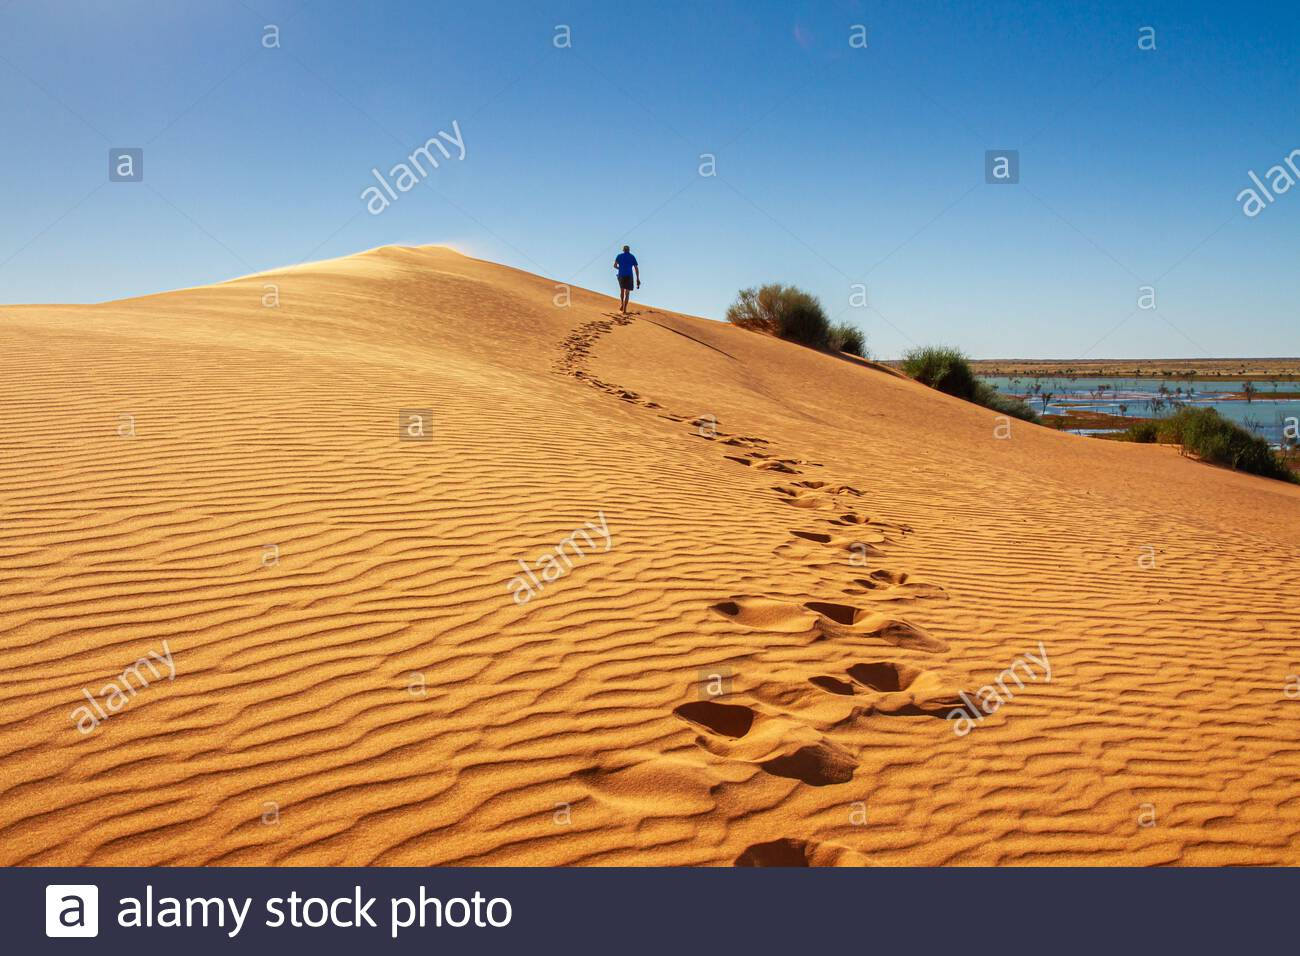 The Simpson Desert is found in central Australia, accessed via Birdsville. At the start of the desert lies Big Red, an iconic sand dune. After a very Stock Photo